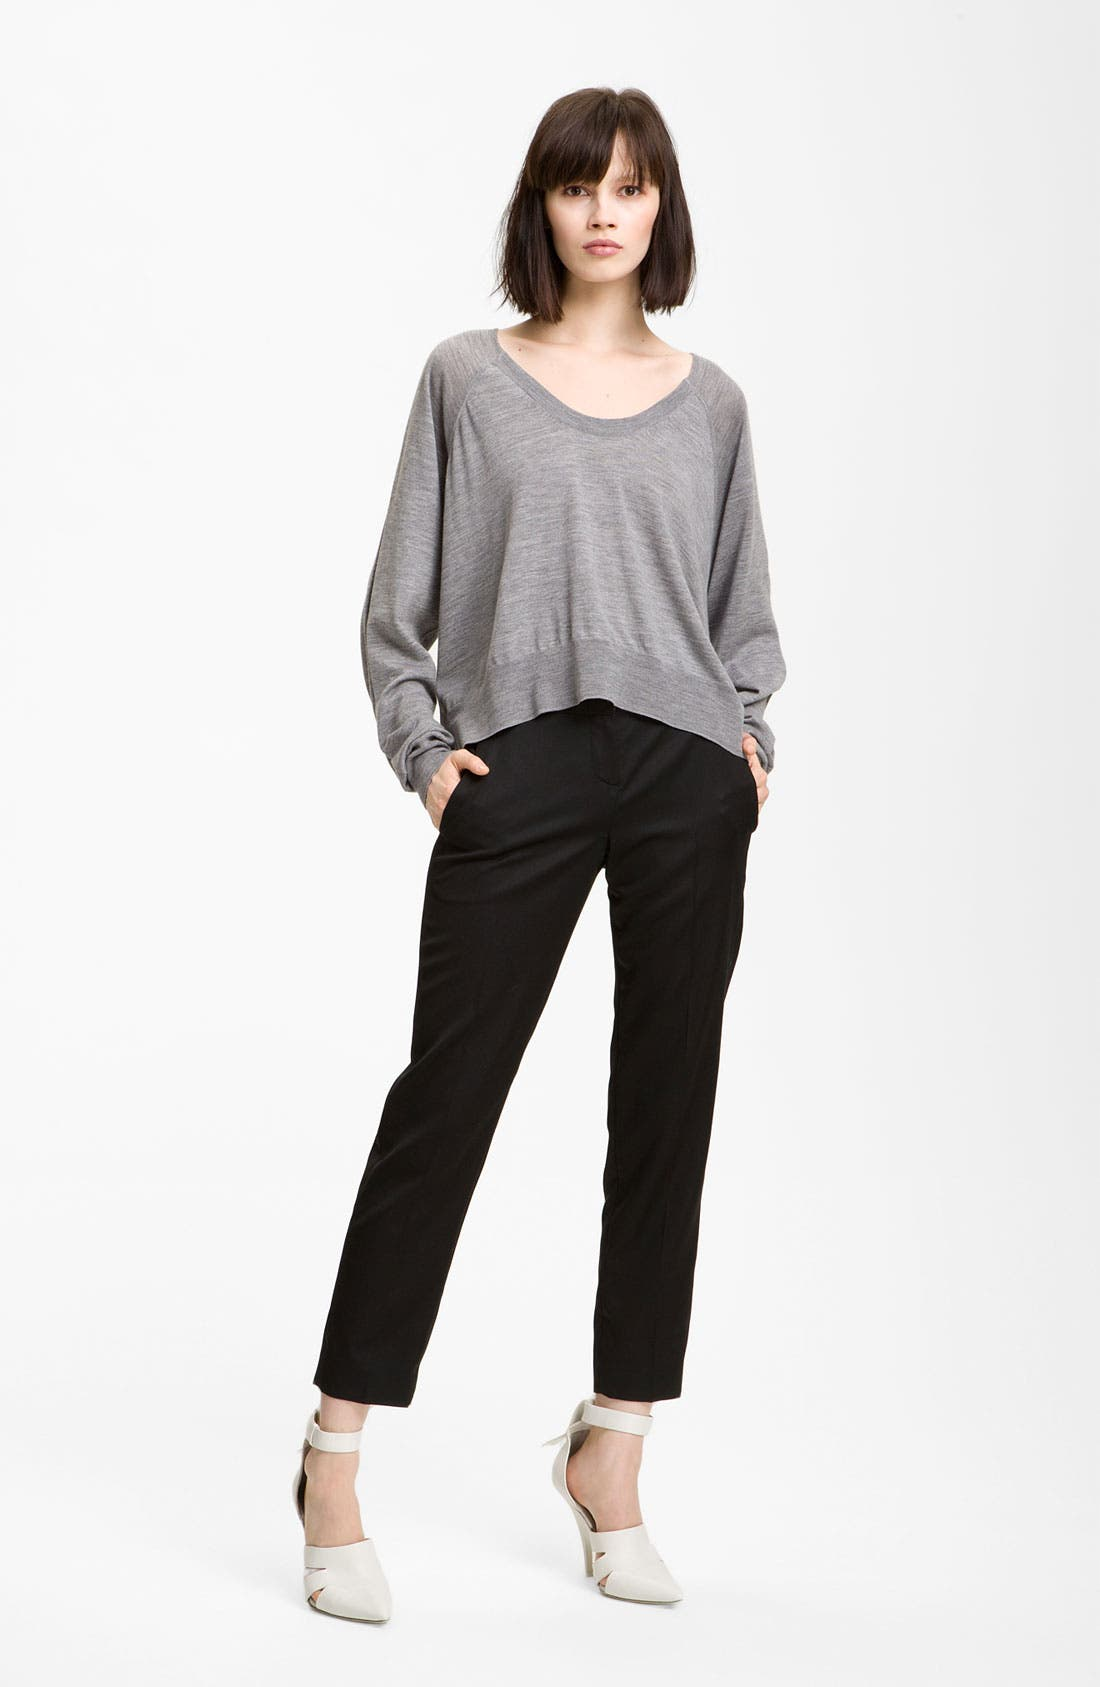 Alternate Image 1 Selected - Alexander Wang Crop Merino Wool Top